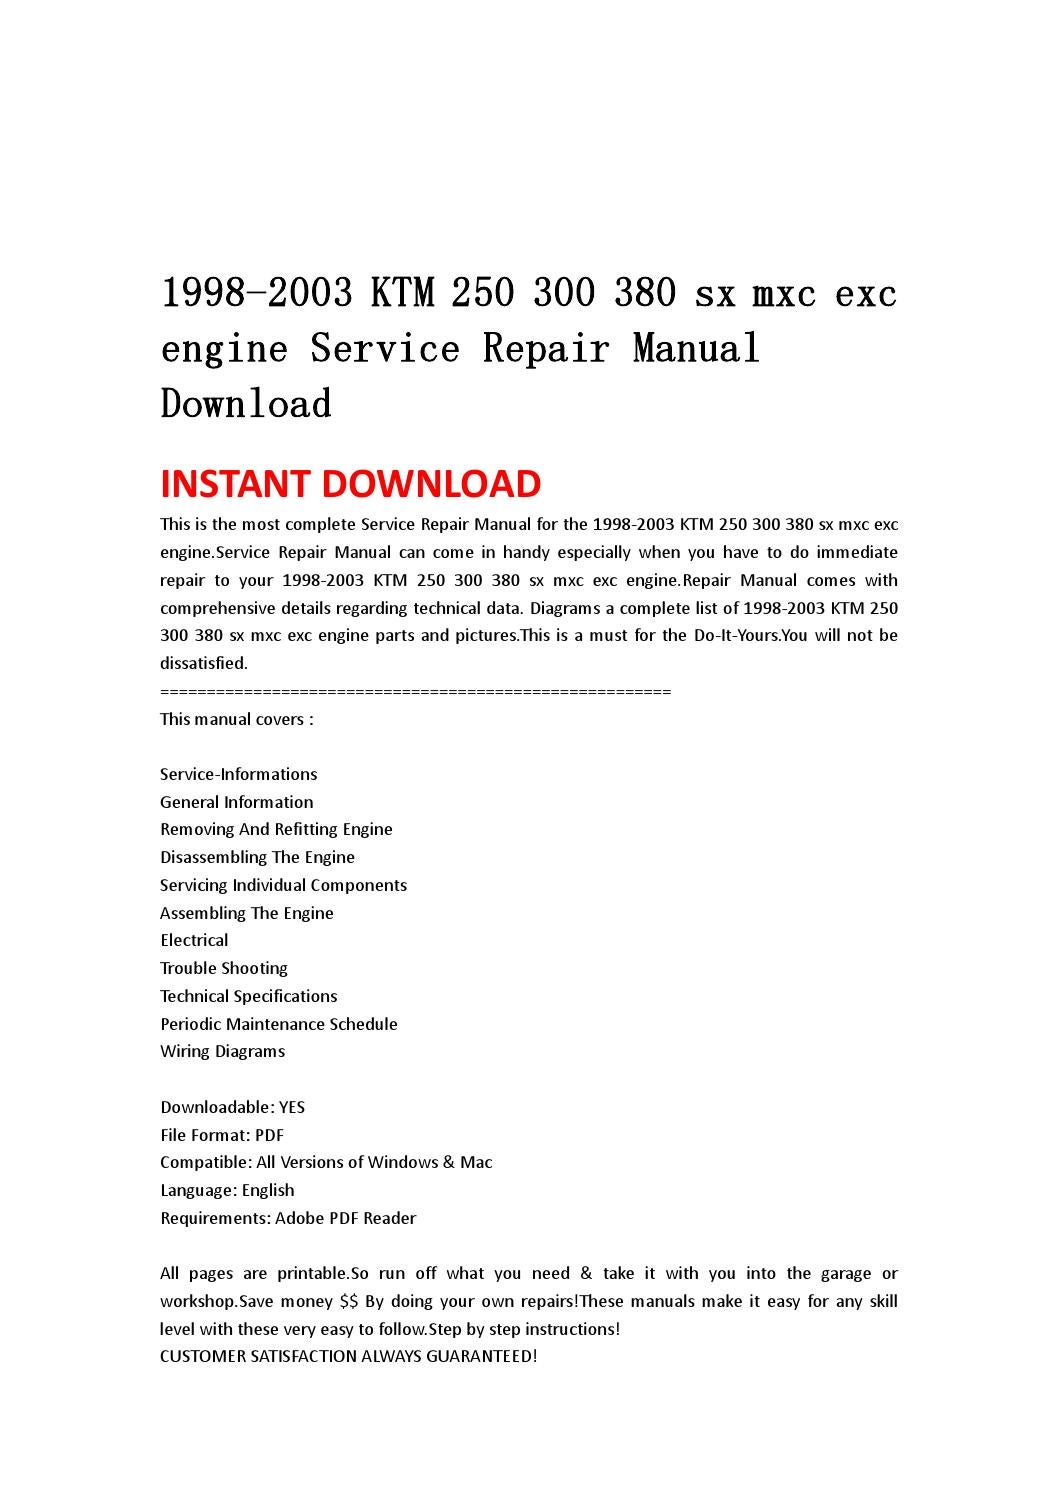 hight resolution of 1998 2003 ktm 250 300 380 sx mxc exc engine service repair manual download by jshnefm uhsnefn issuu